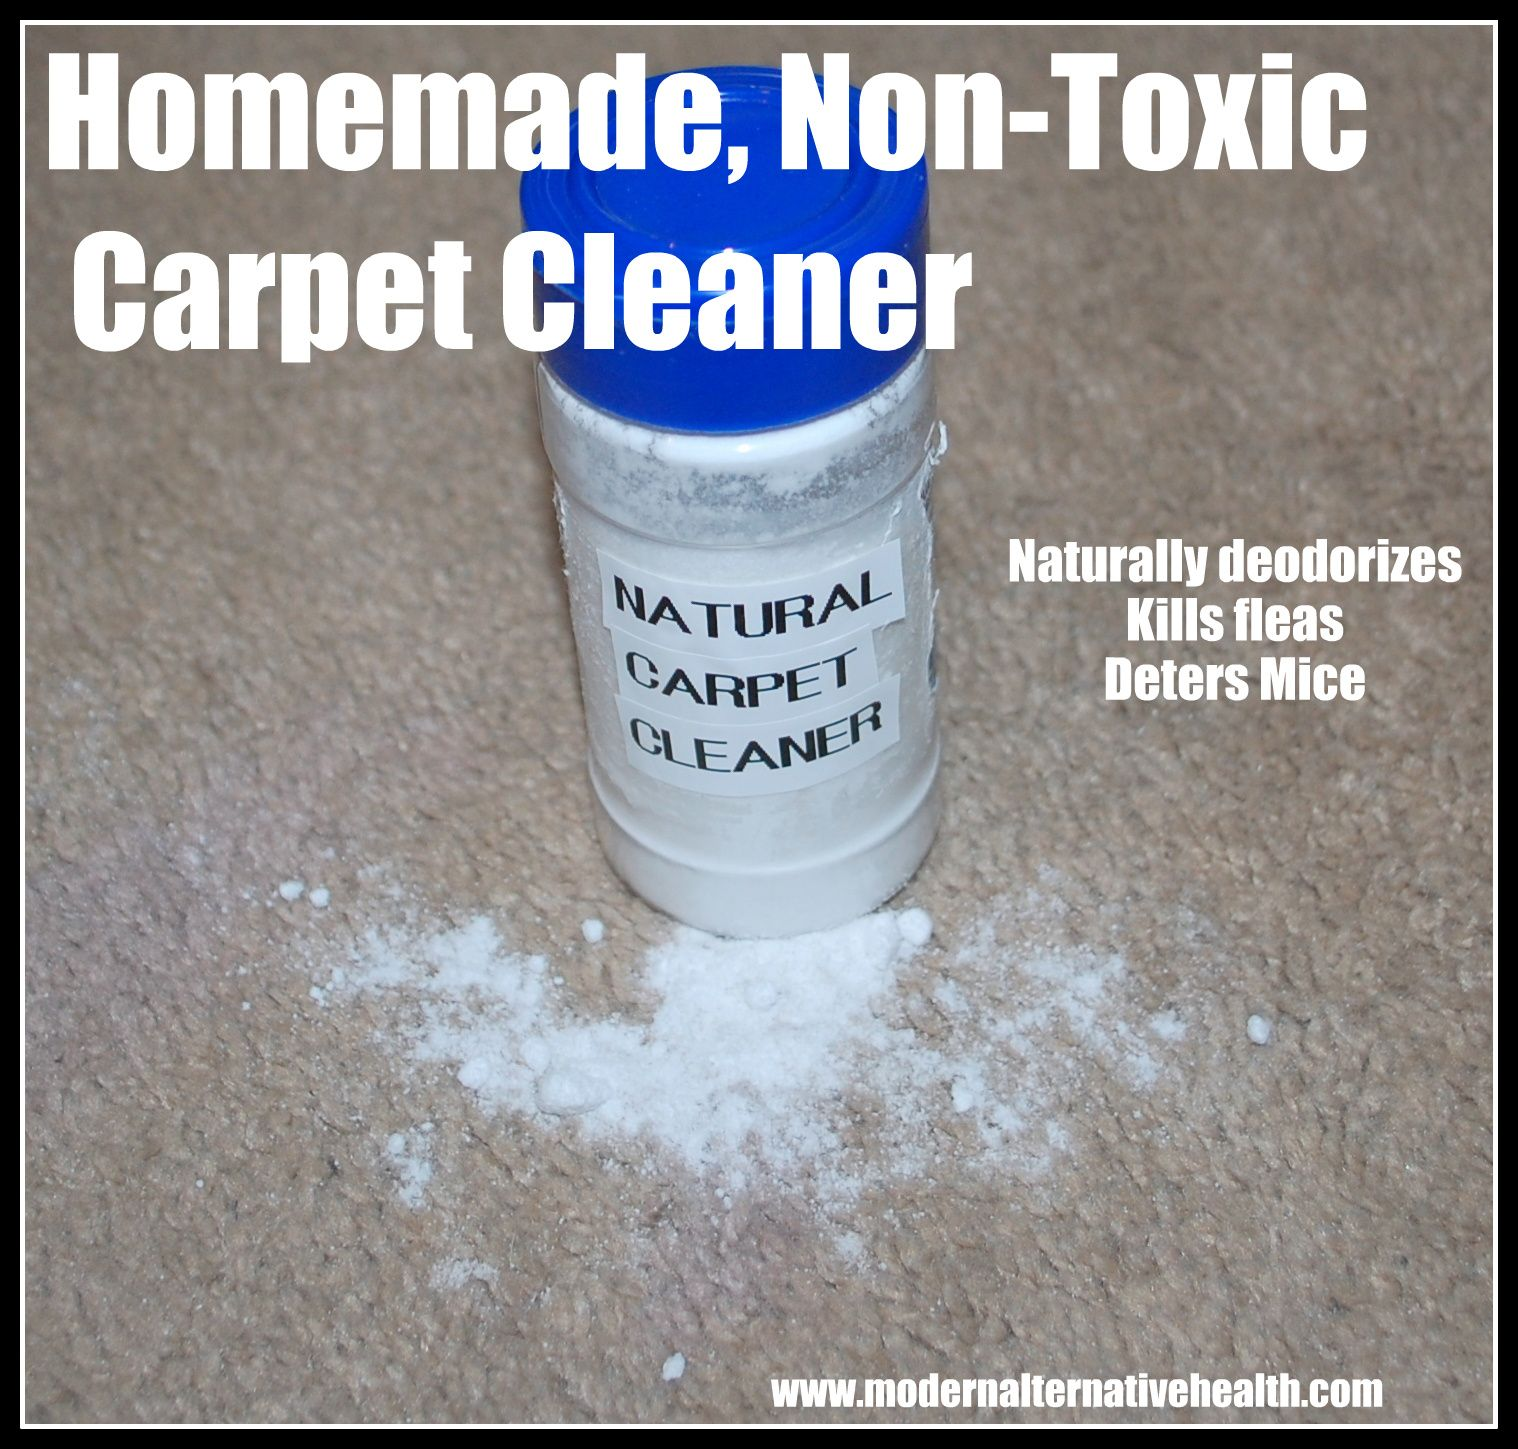 Diy Homemade Carpet Cleaner She Says This Naturally Kills Fleas And Deters Mice I Think Carpet Cleaner Homemade Carpet Cleaning Hacks Diy Cleaning Products